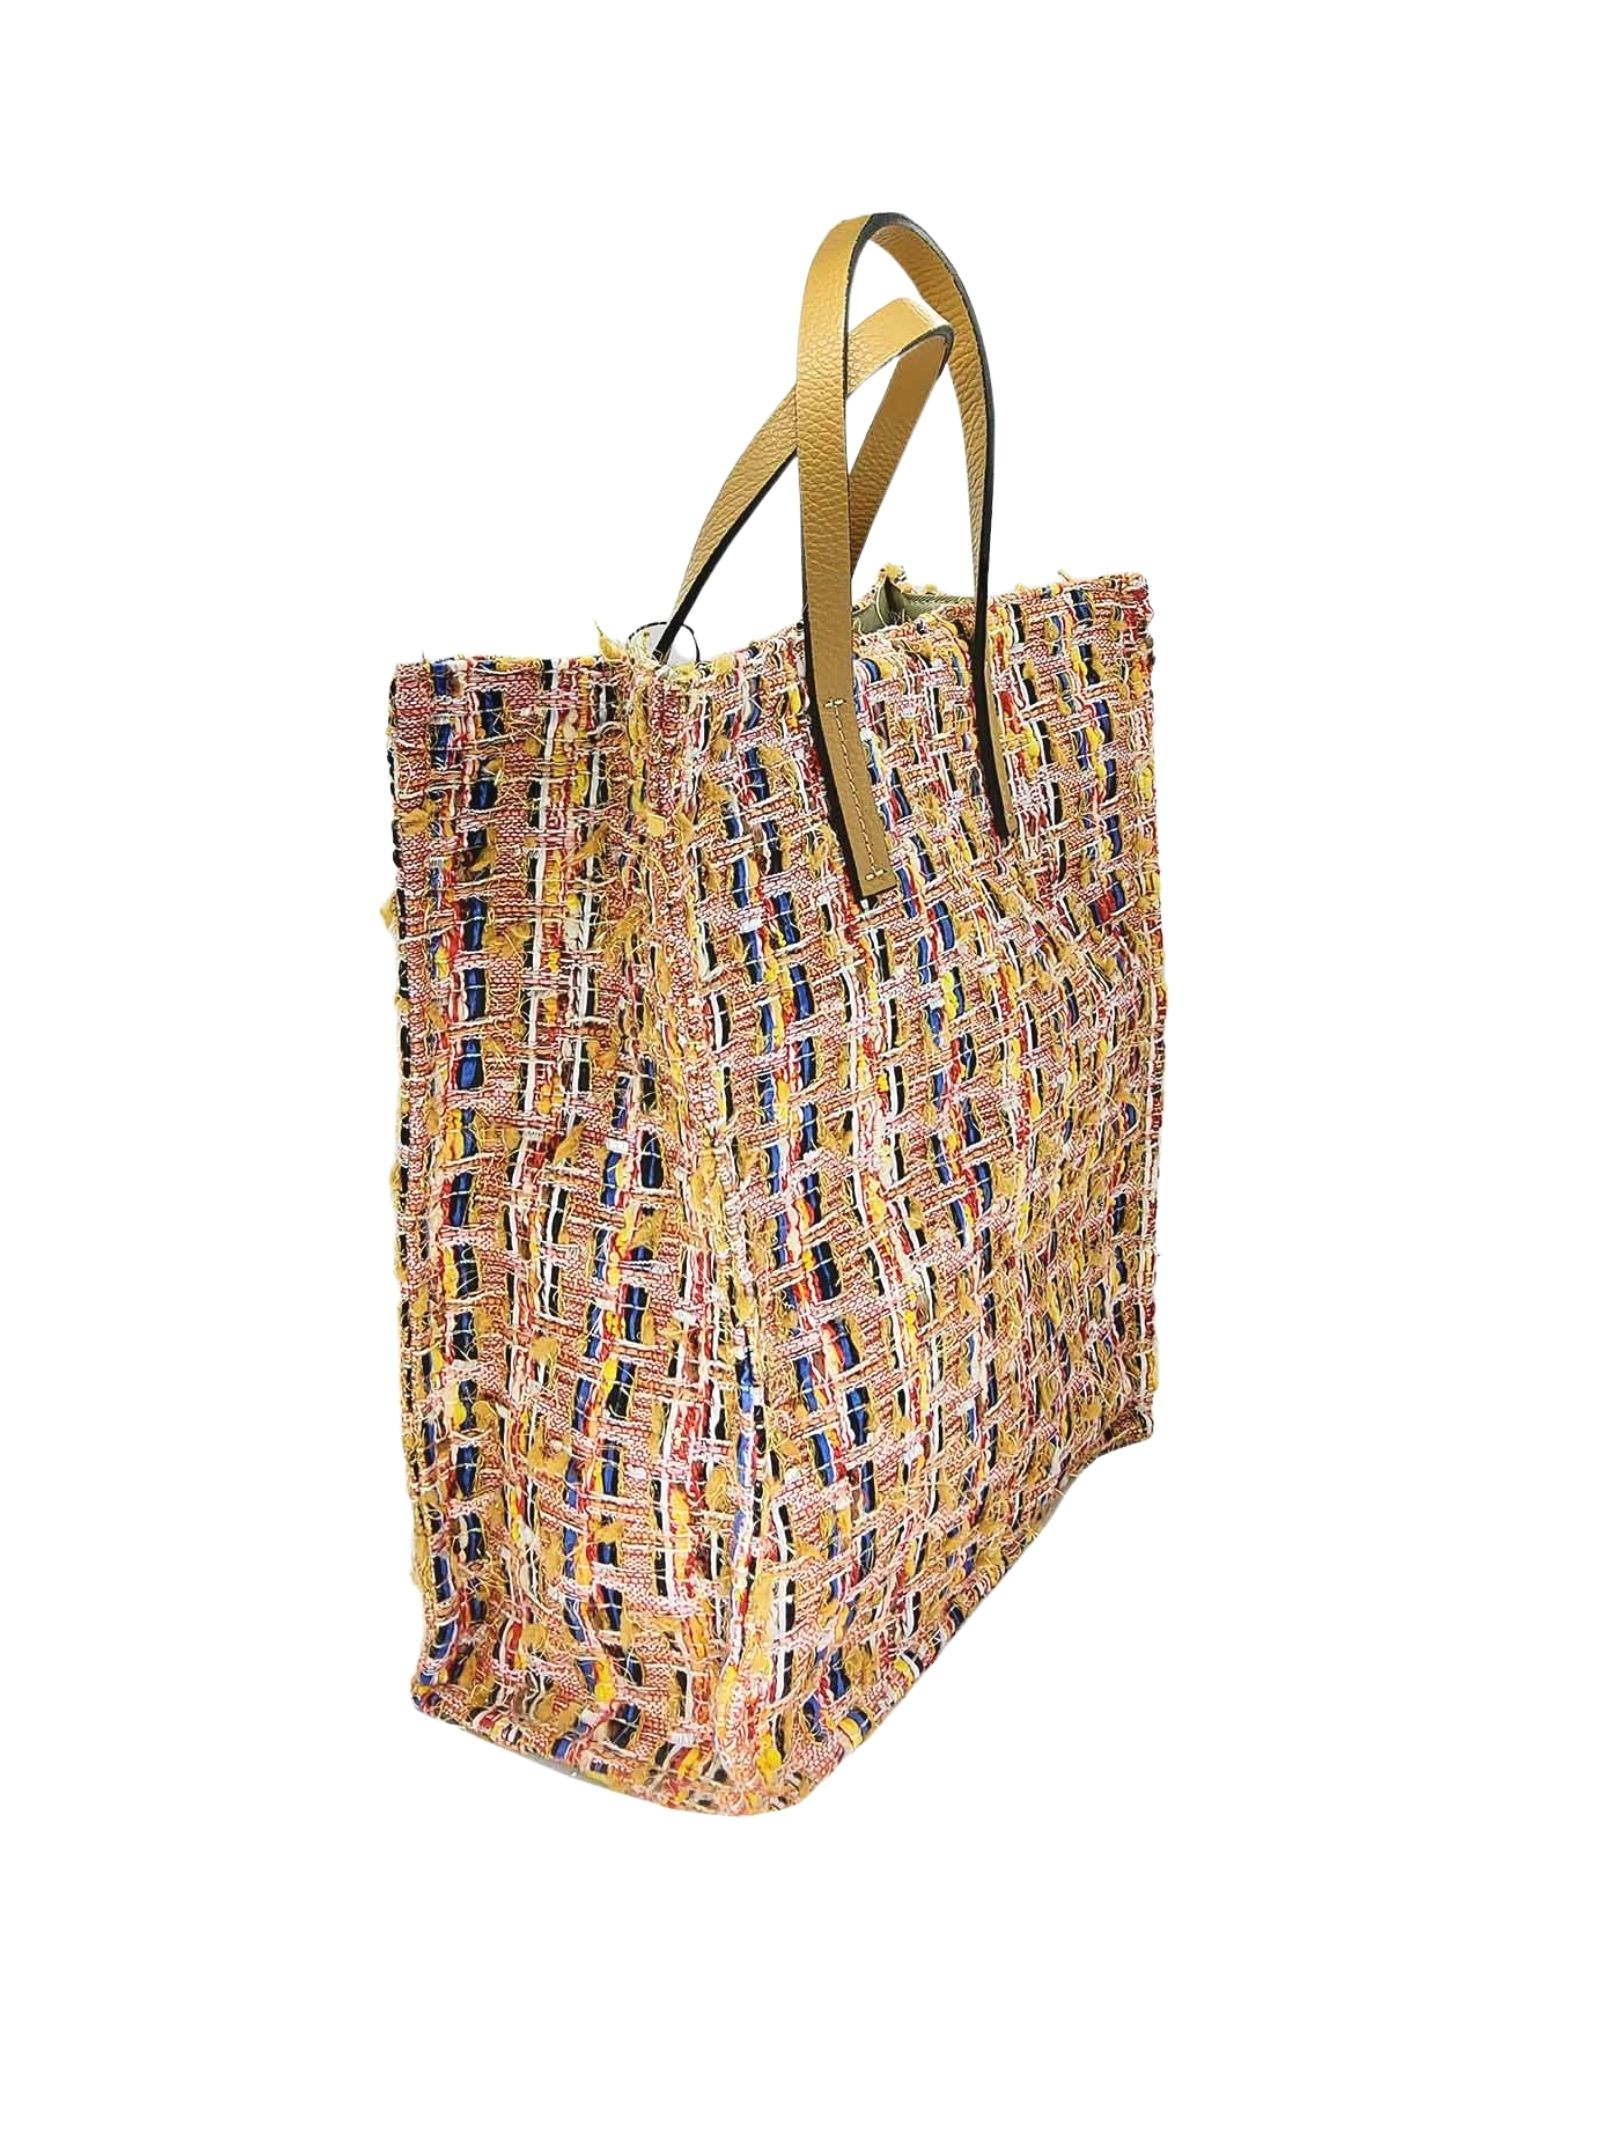 Women's Shopping Bags in Multicolored Peach Fabric with Double Handle Kassiopea   Bags and backpacks   UMIL020